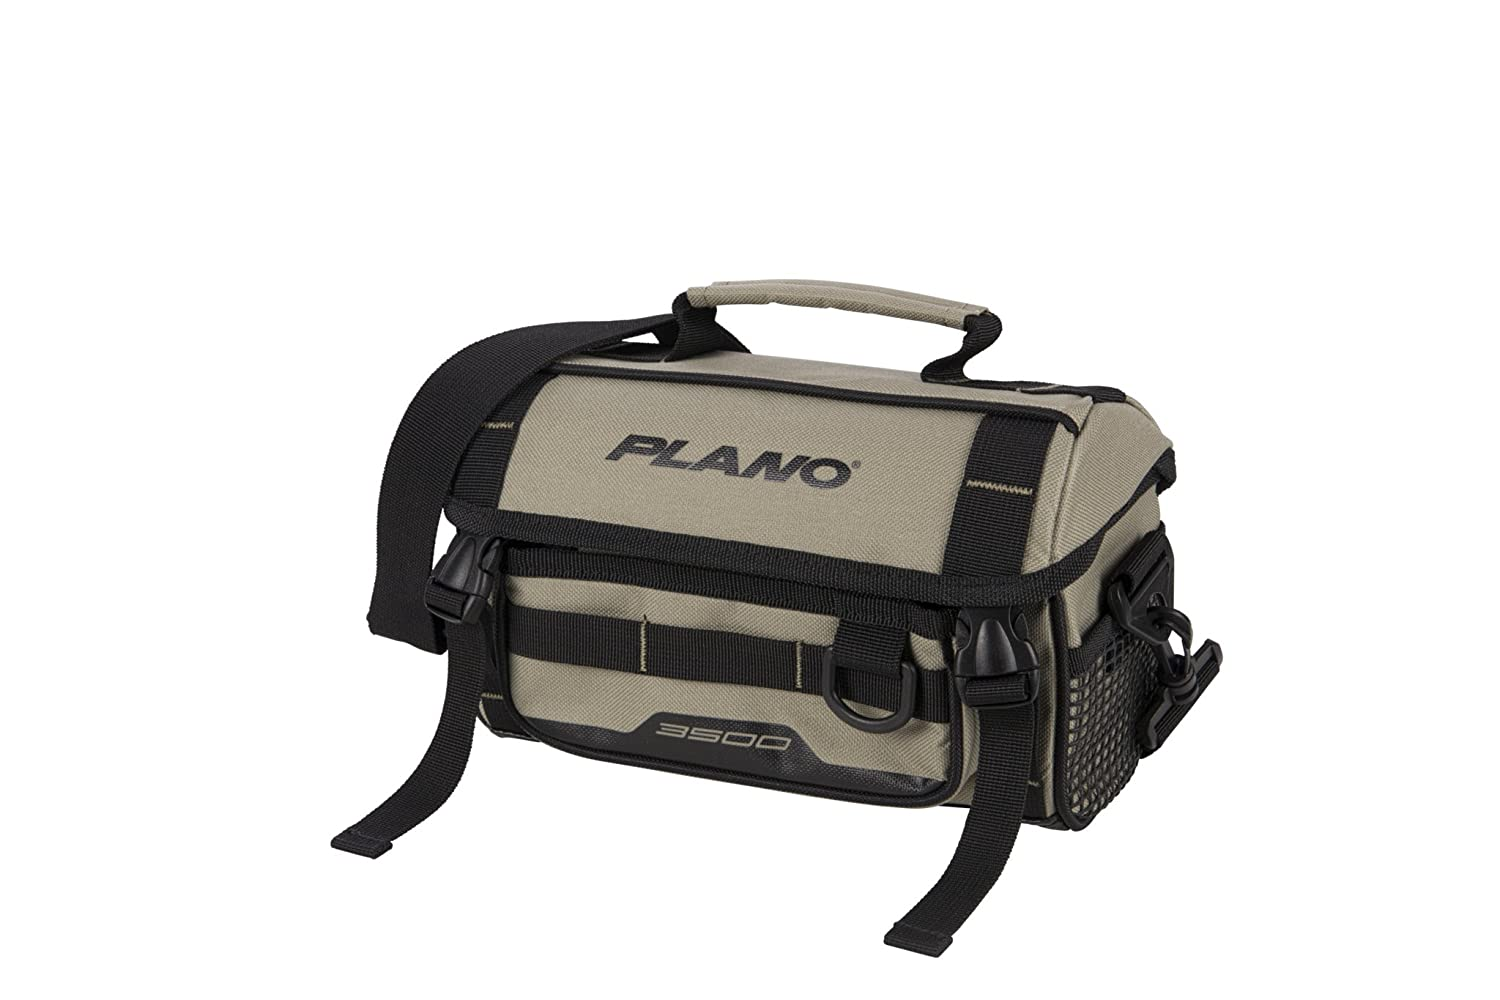 Plano PLAB35121 Weekend Series 3500 Size Softsider Tackle Bag, Tan PLANO MOLDING COMPANY